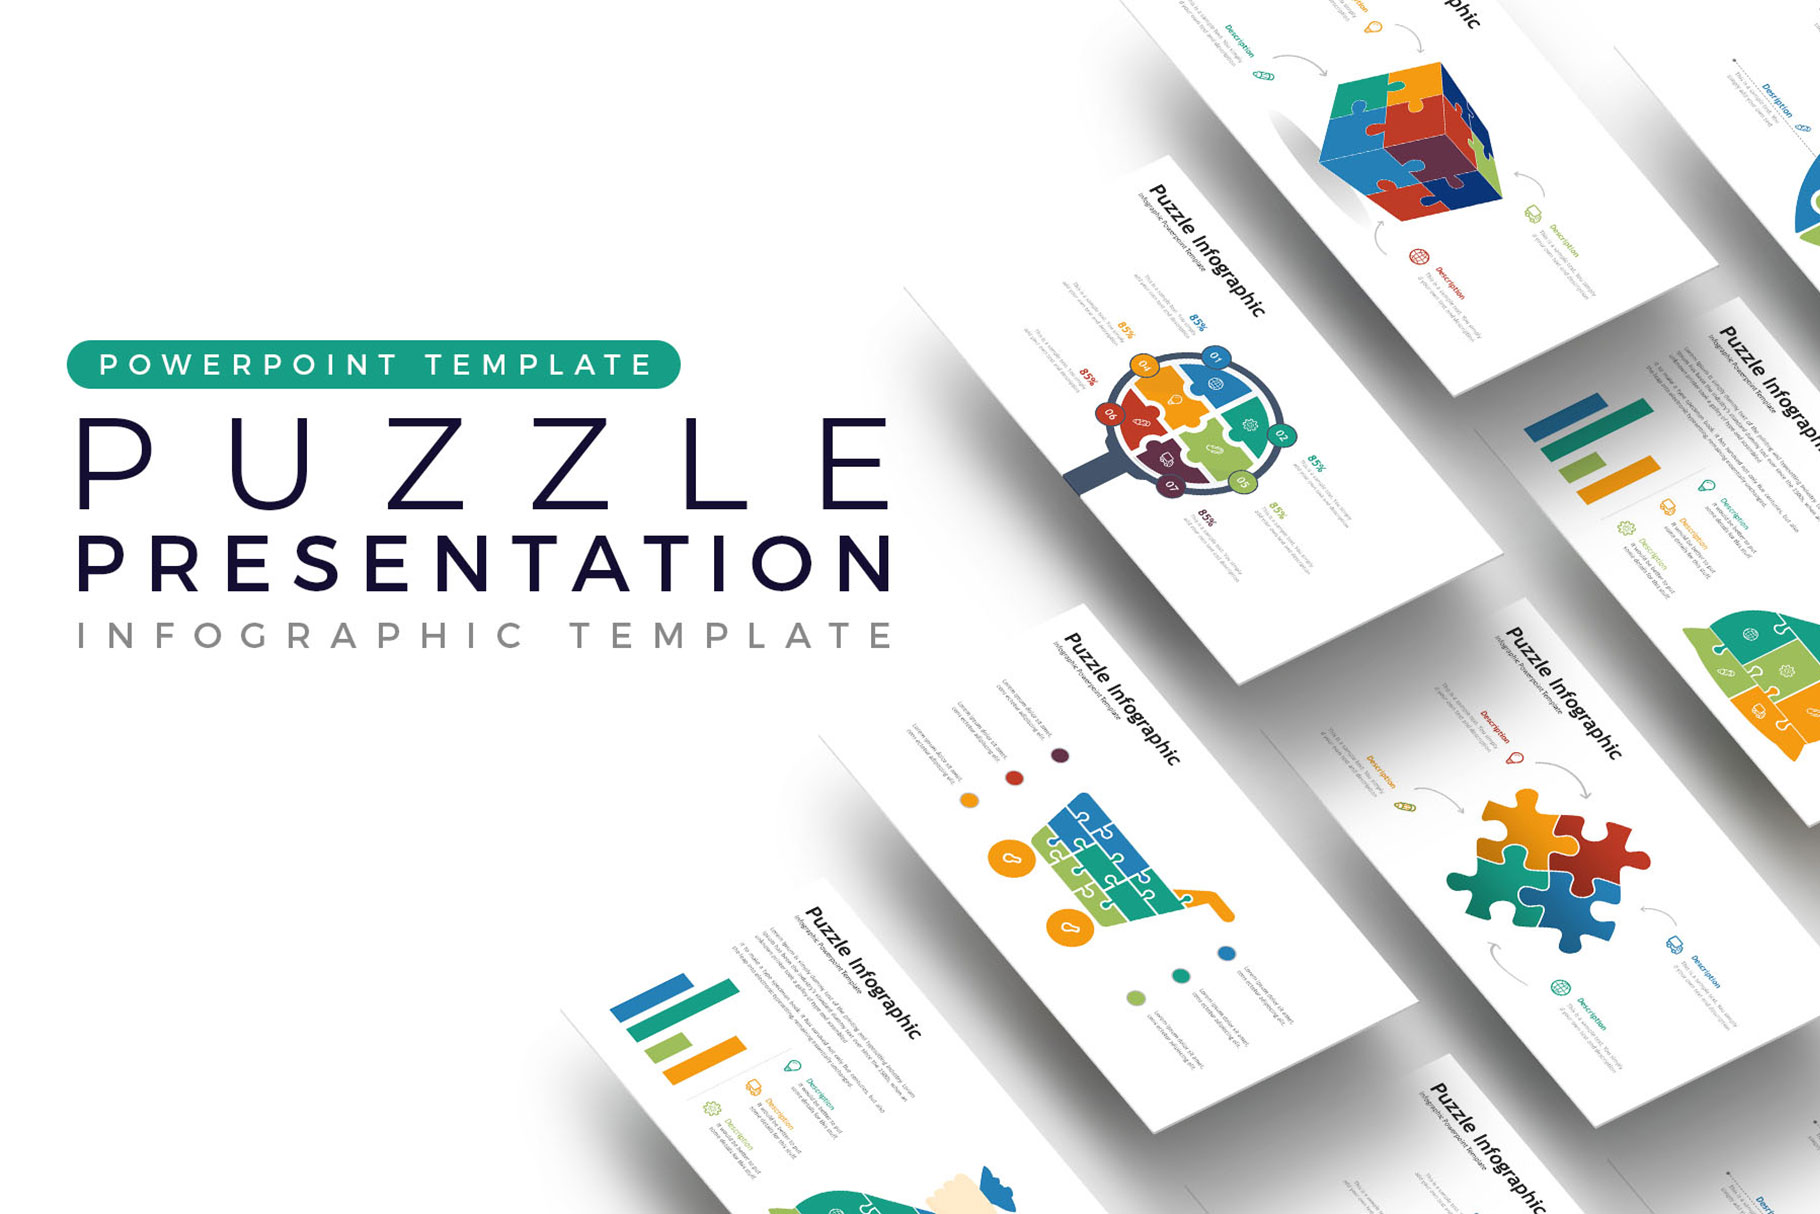 Puzzle Presentation - Infographic Template example image 1